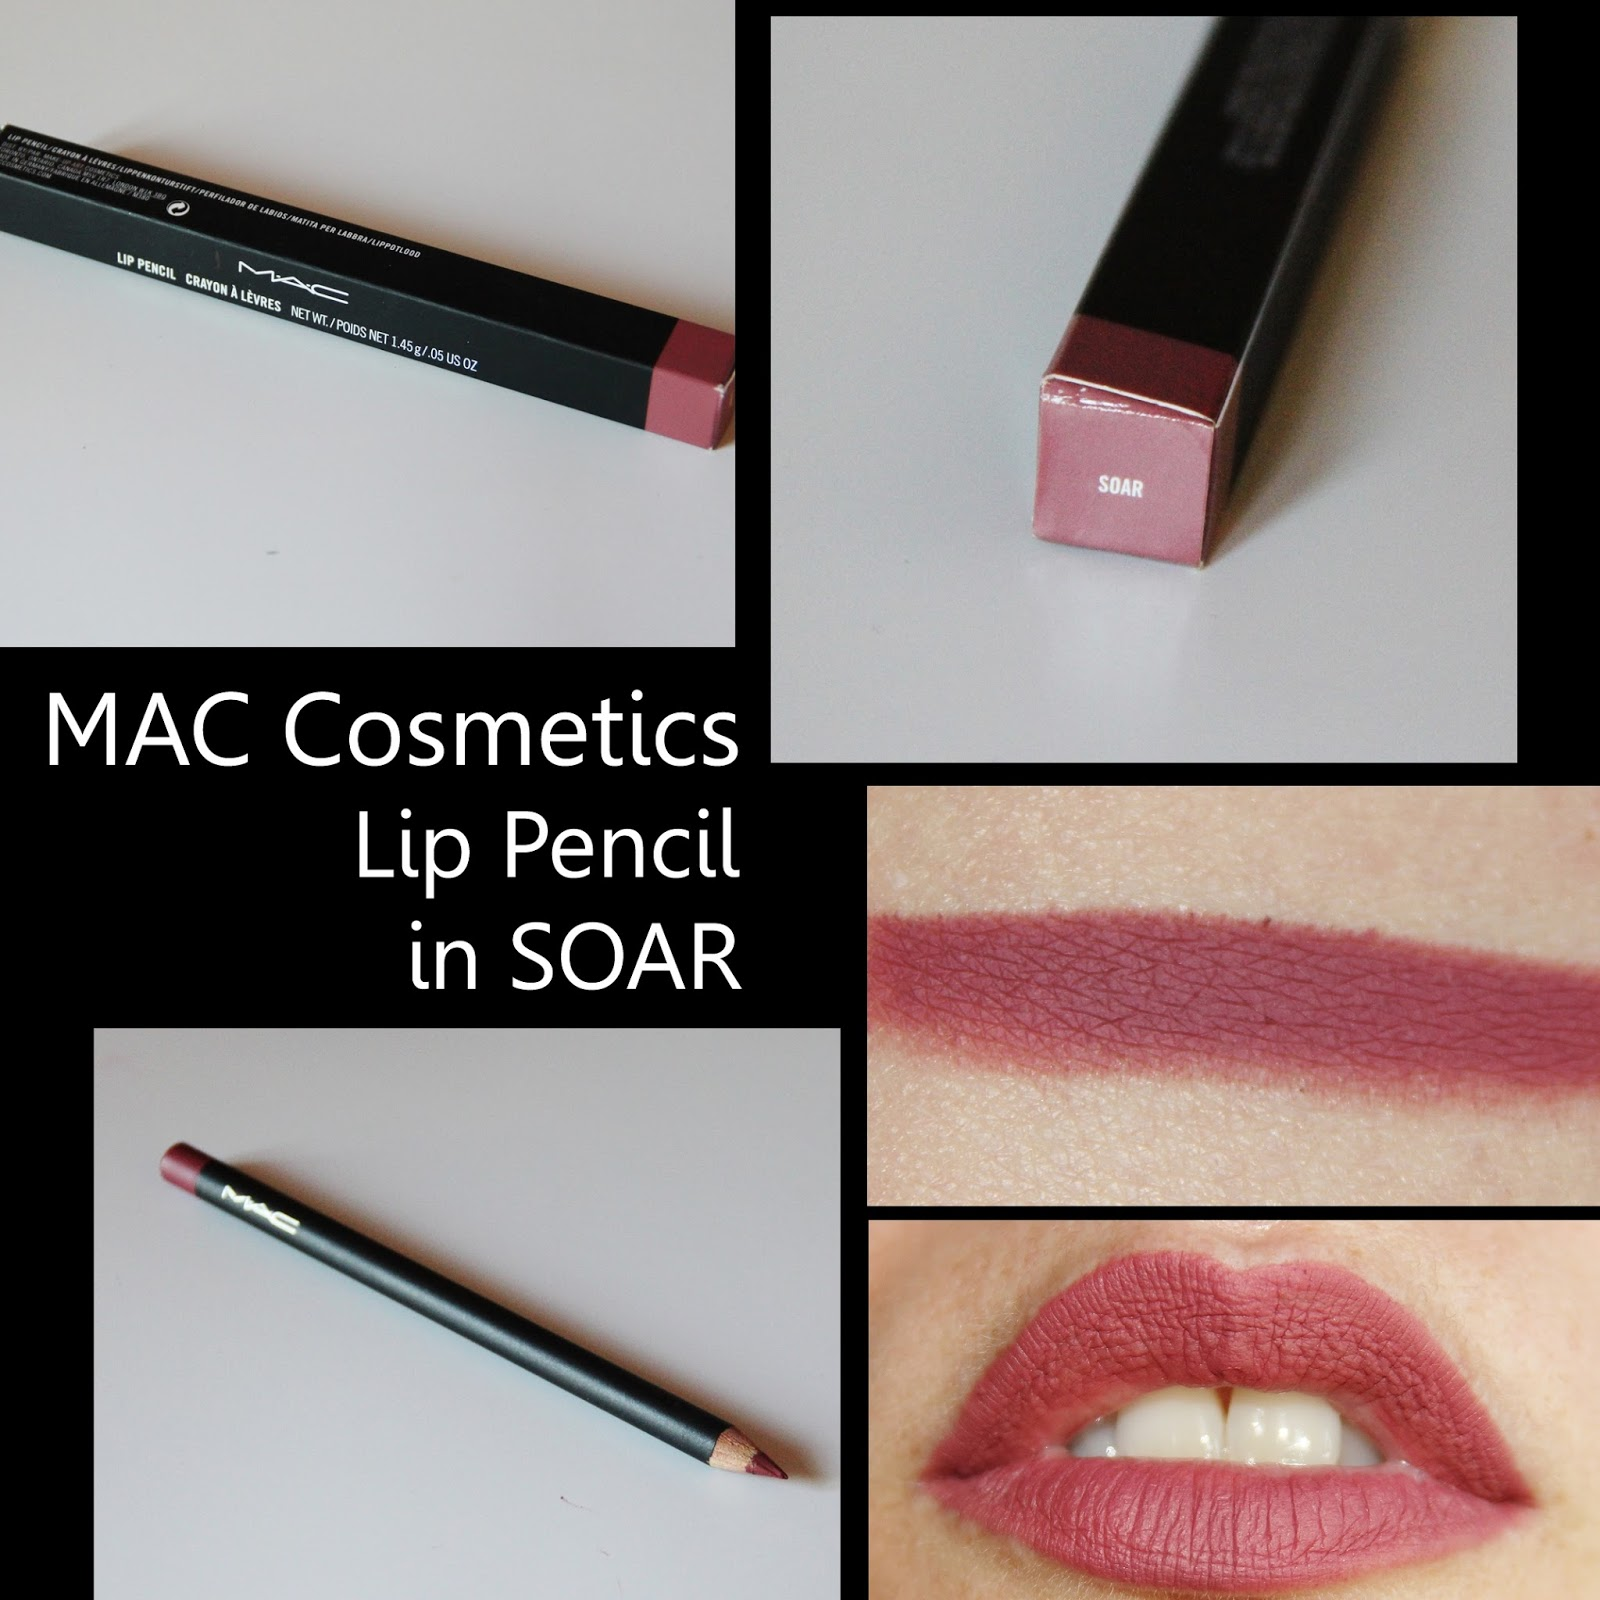 Michelaismyname Mac Cosmetics Lip Pencil In Soar Review